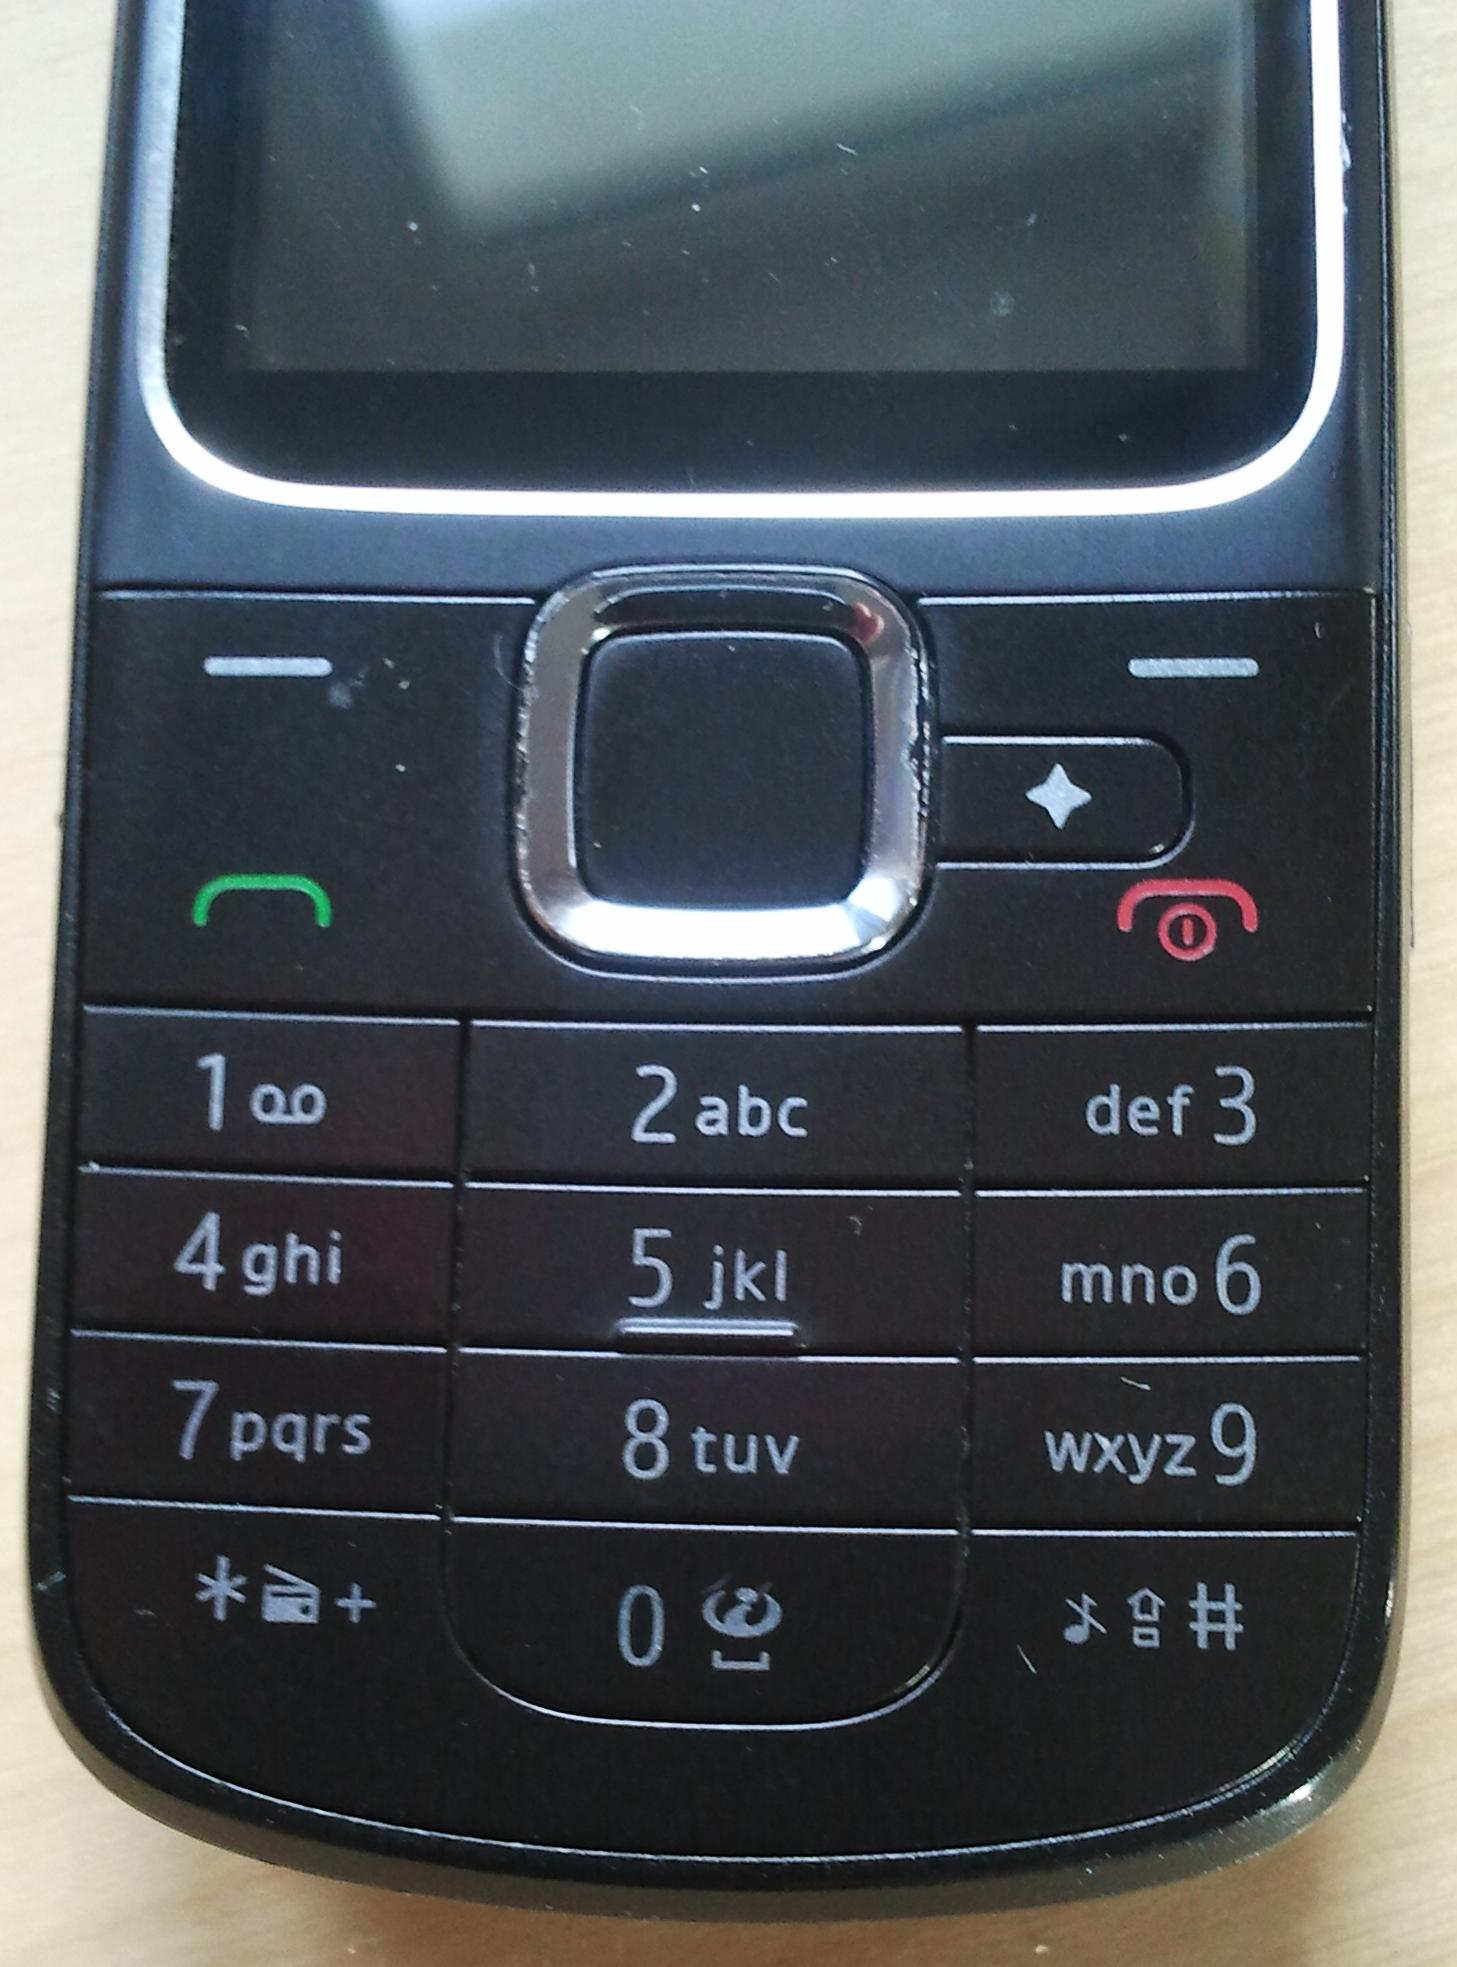 File:Nokia 2710 - 1.jpeg